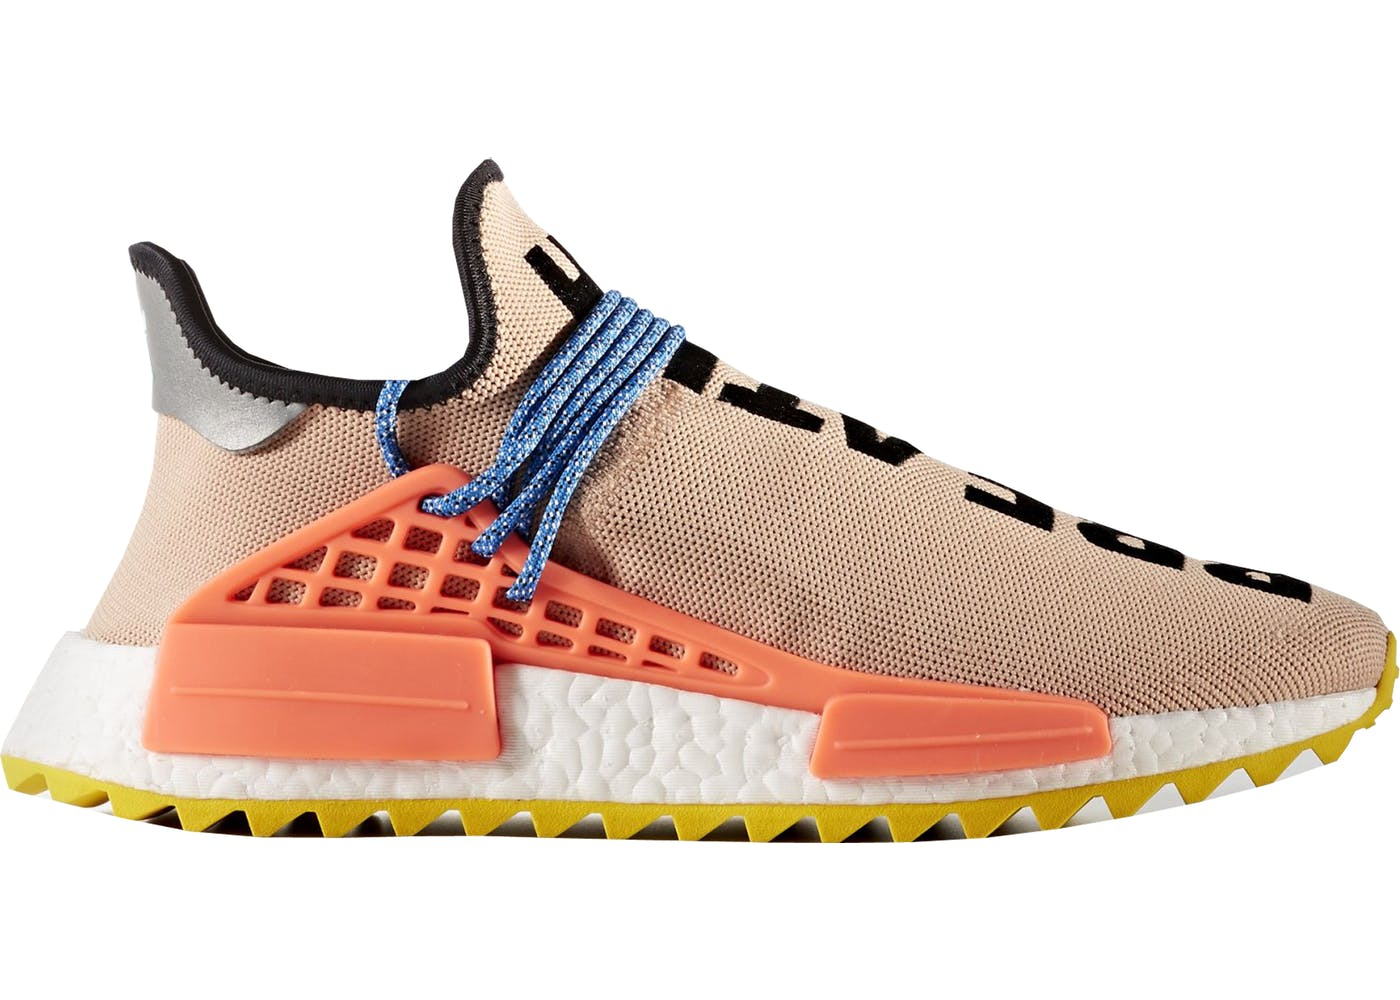 Adidas Human Race NMD x Pharrell Williams Green and Blue On